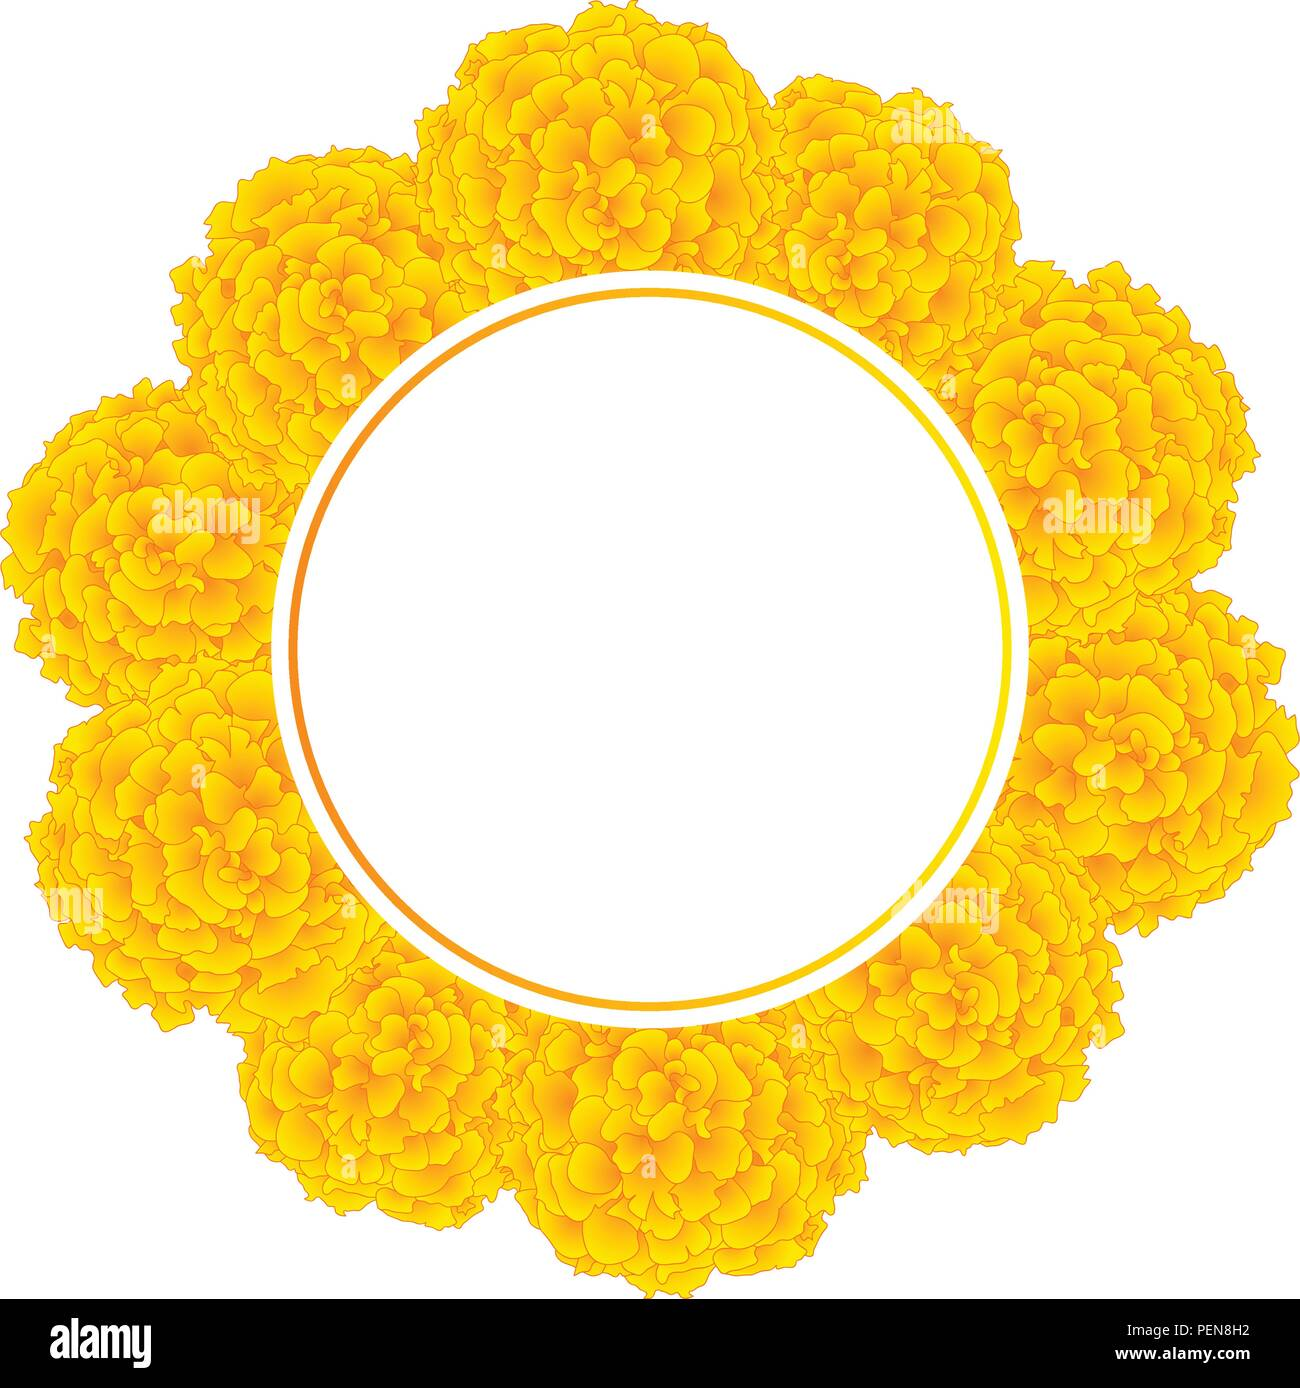 marigold flower ta es banner wreath isolated on white background vector illustration PEN8H2